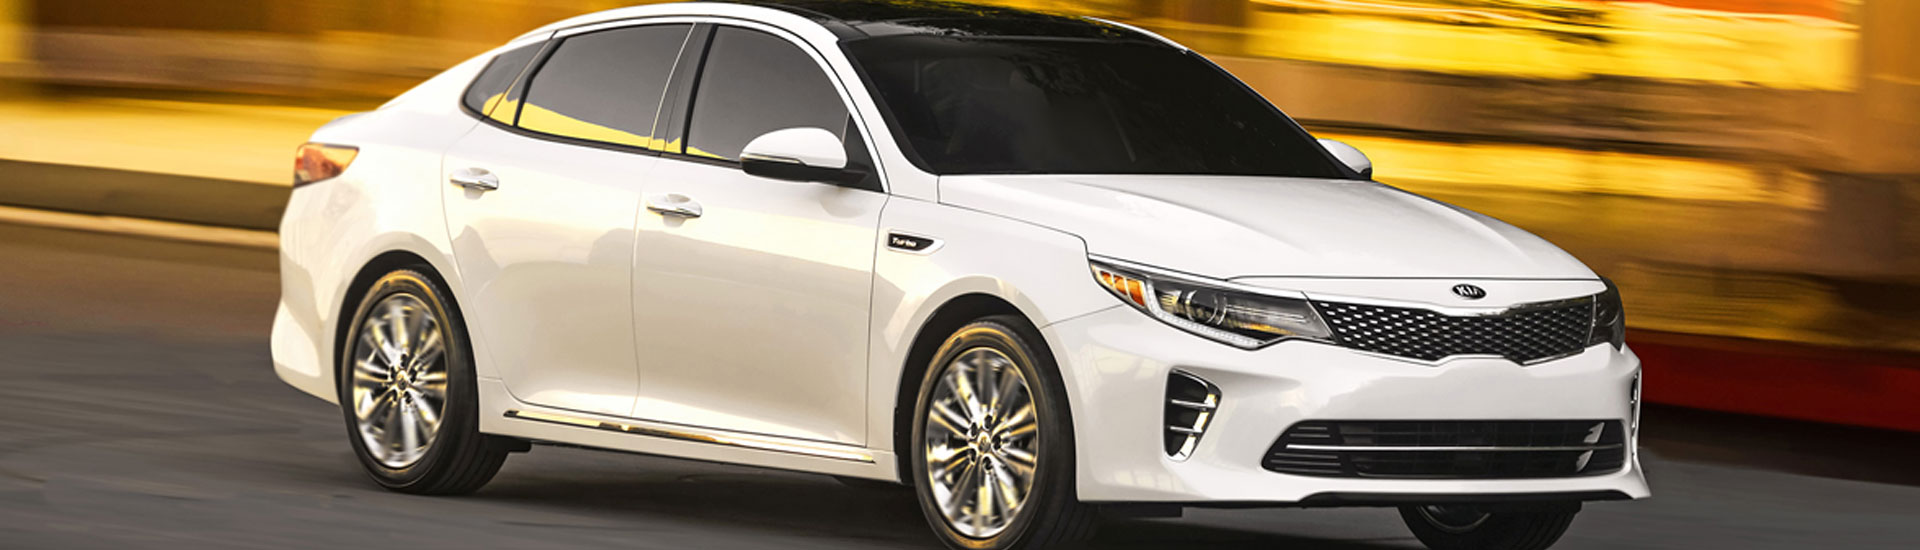 2009 Kia Optima Window Tint